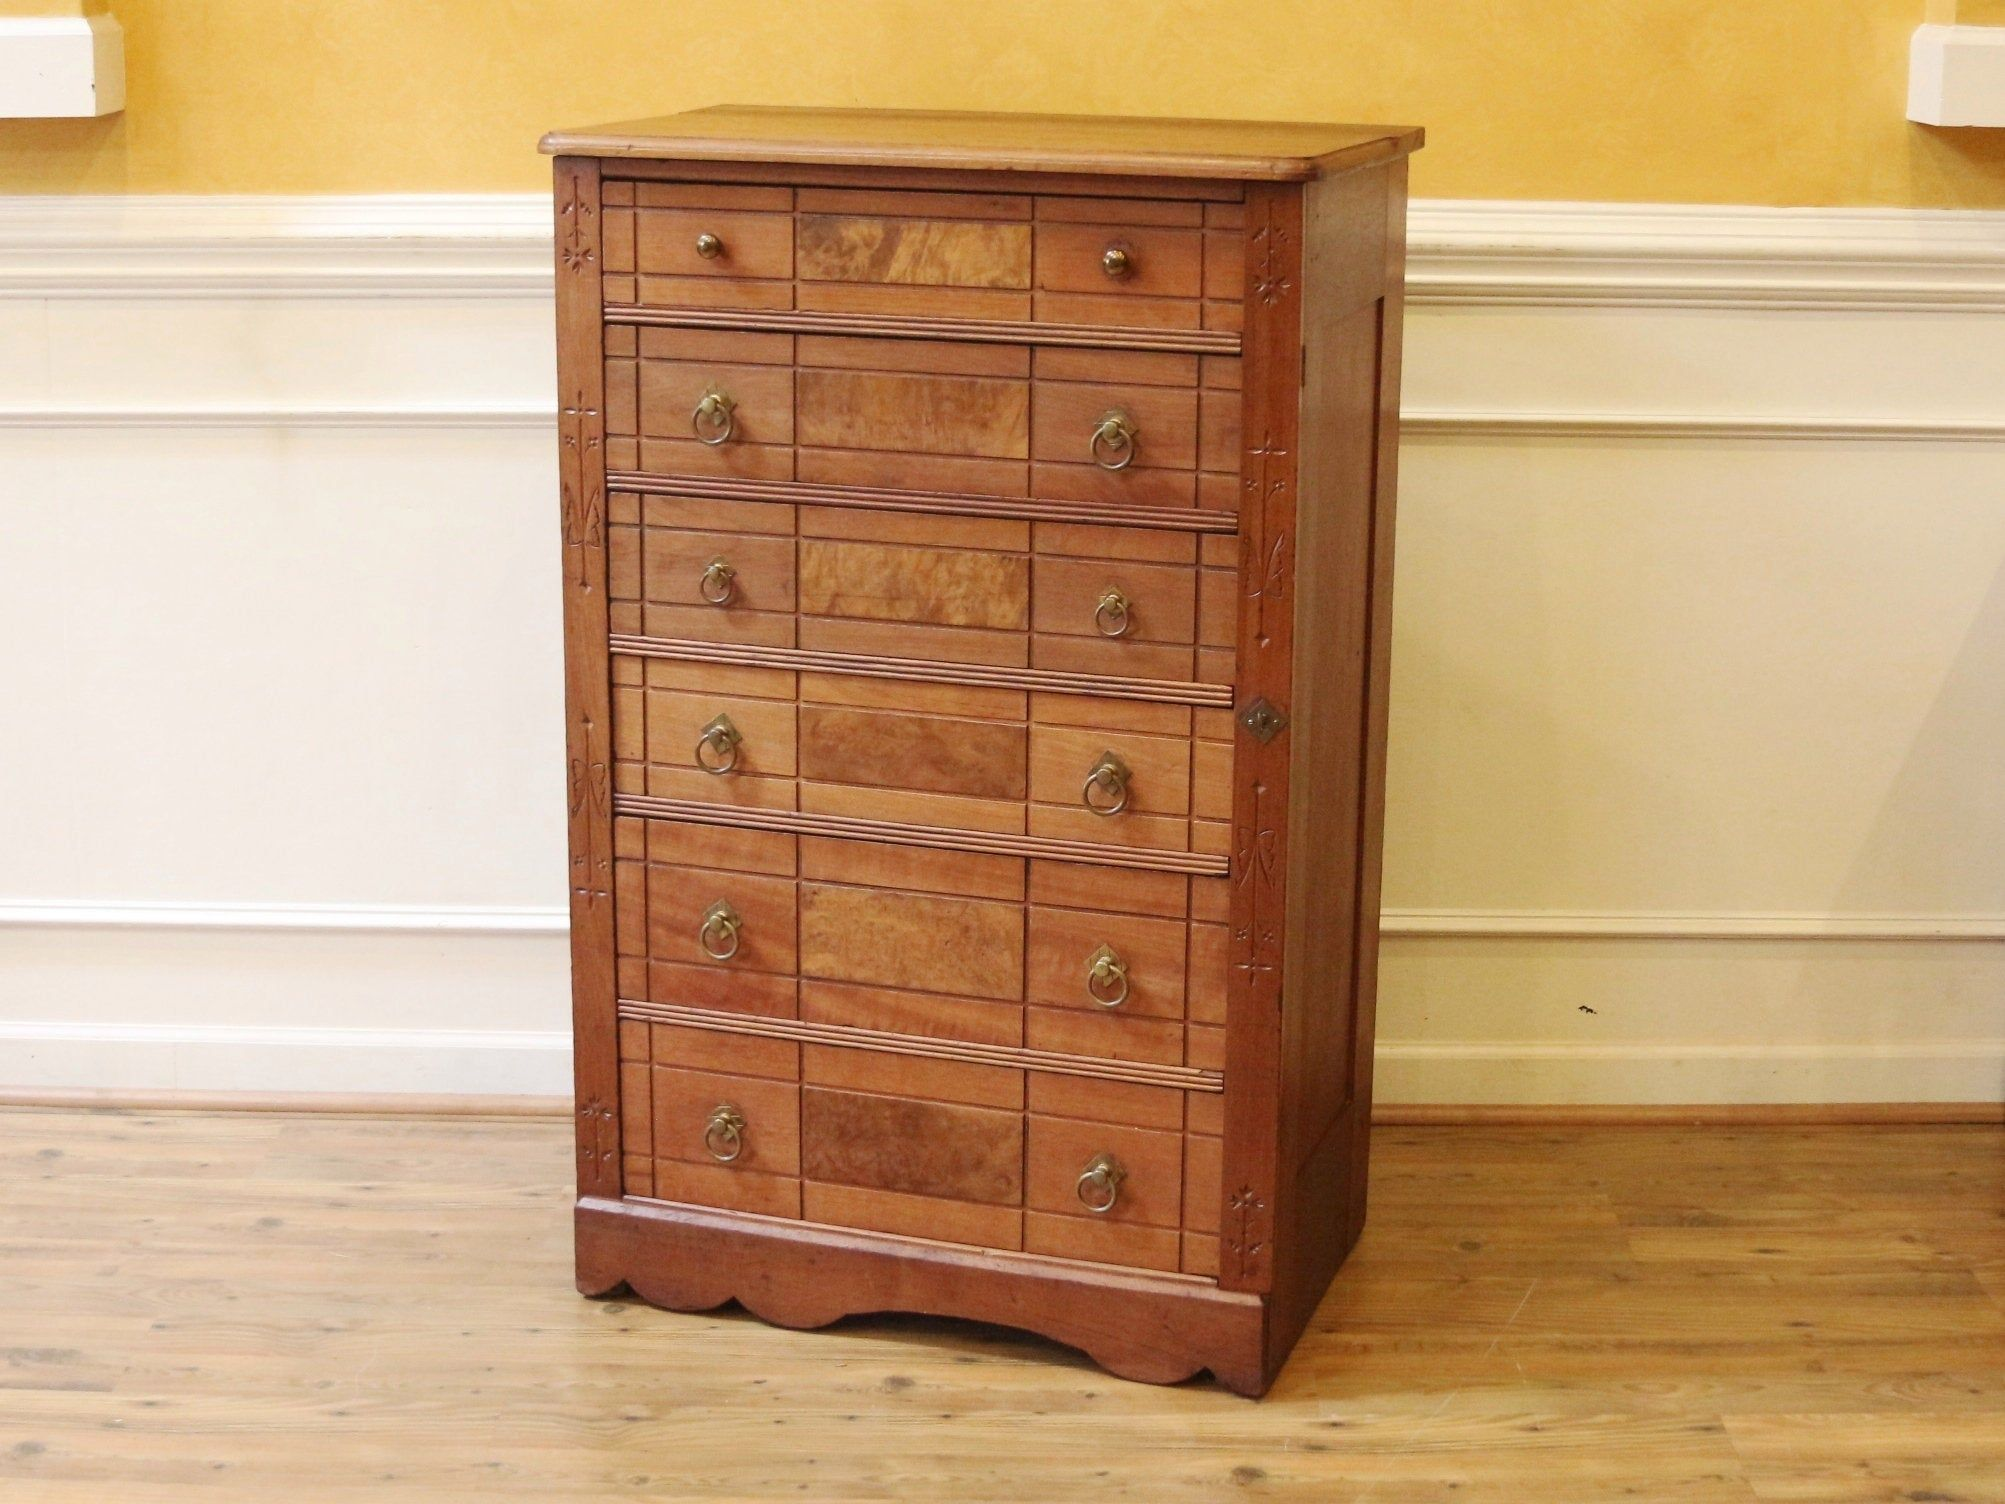 Antique eastlake style lock side tall chest of drawers